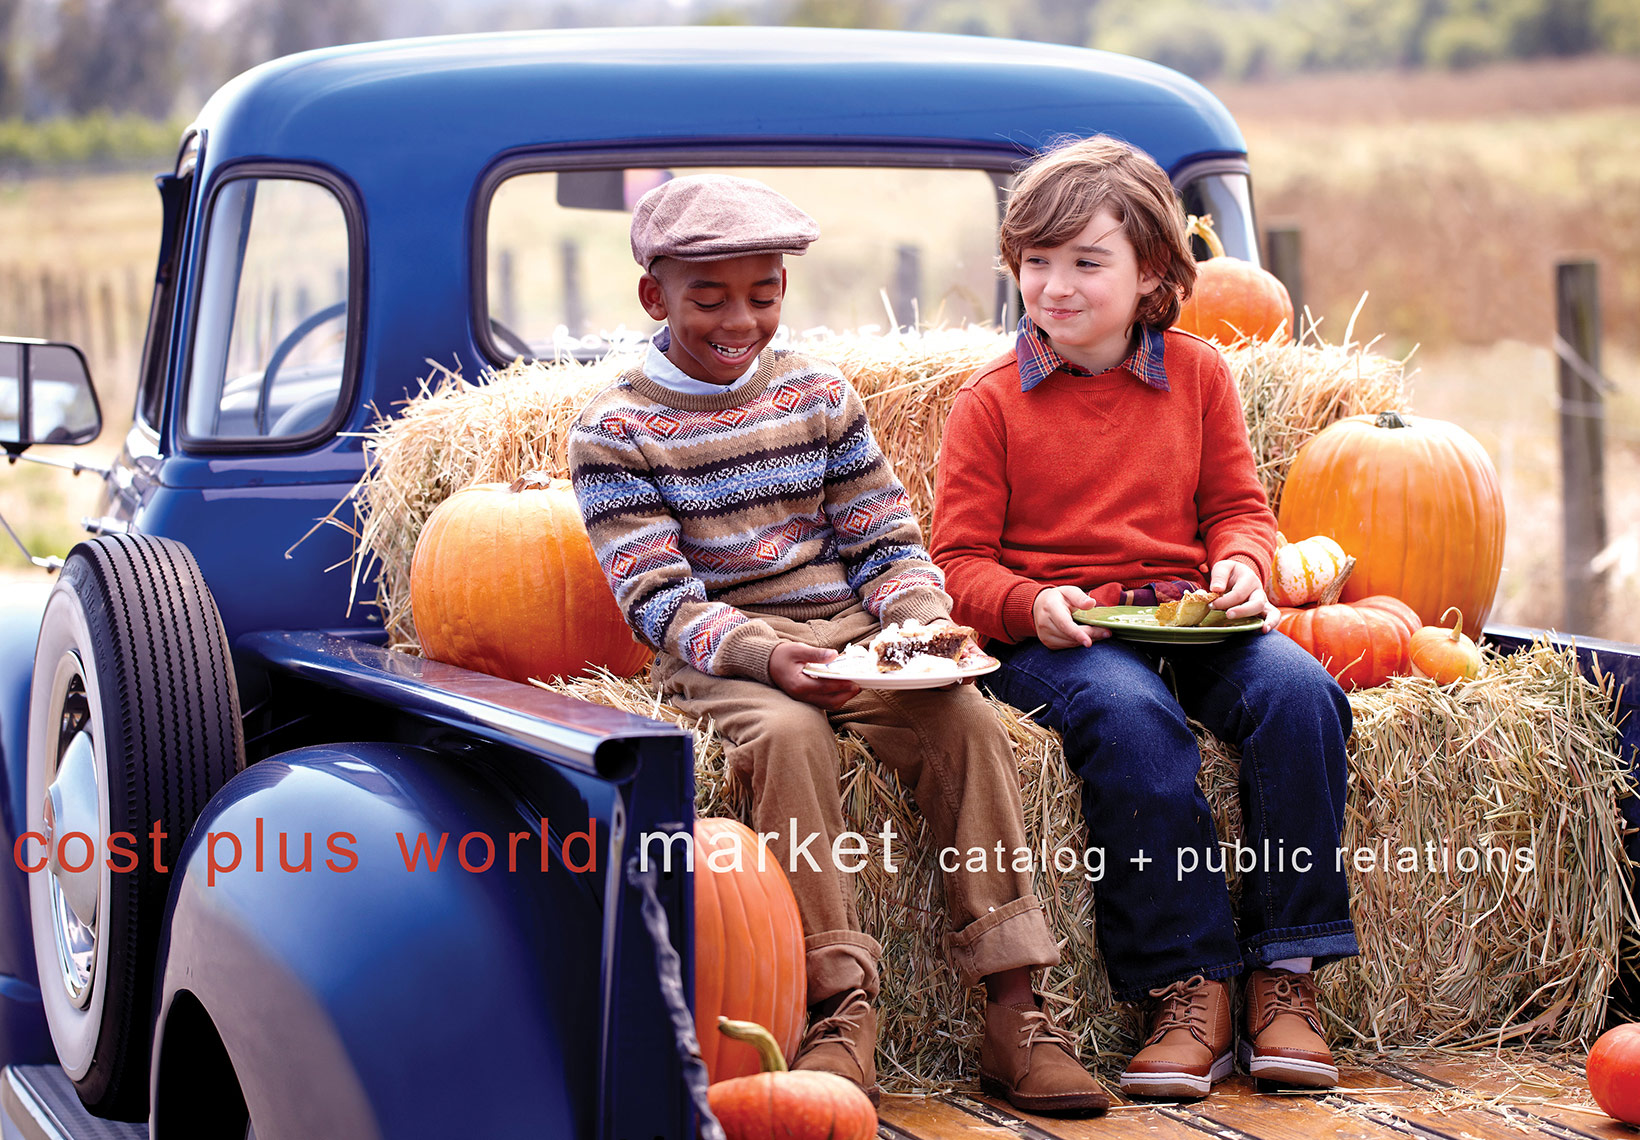 Kids in Pickup Truck Eating Pie